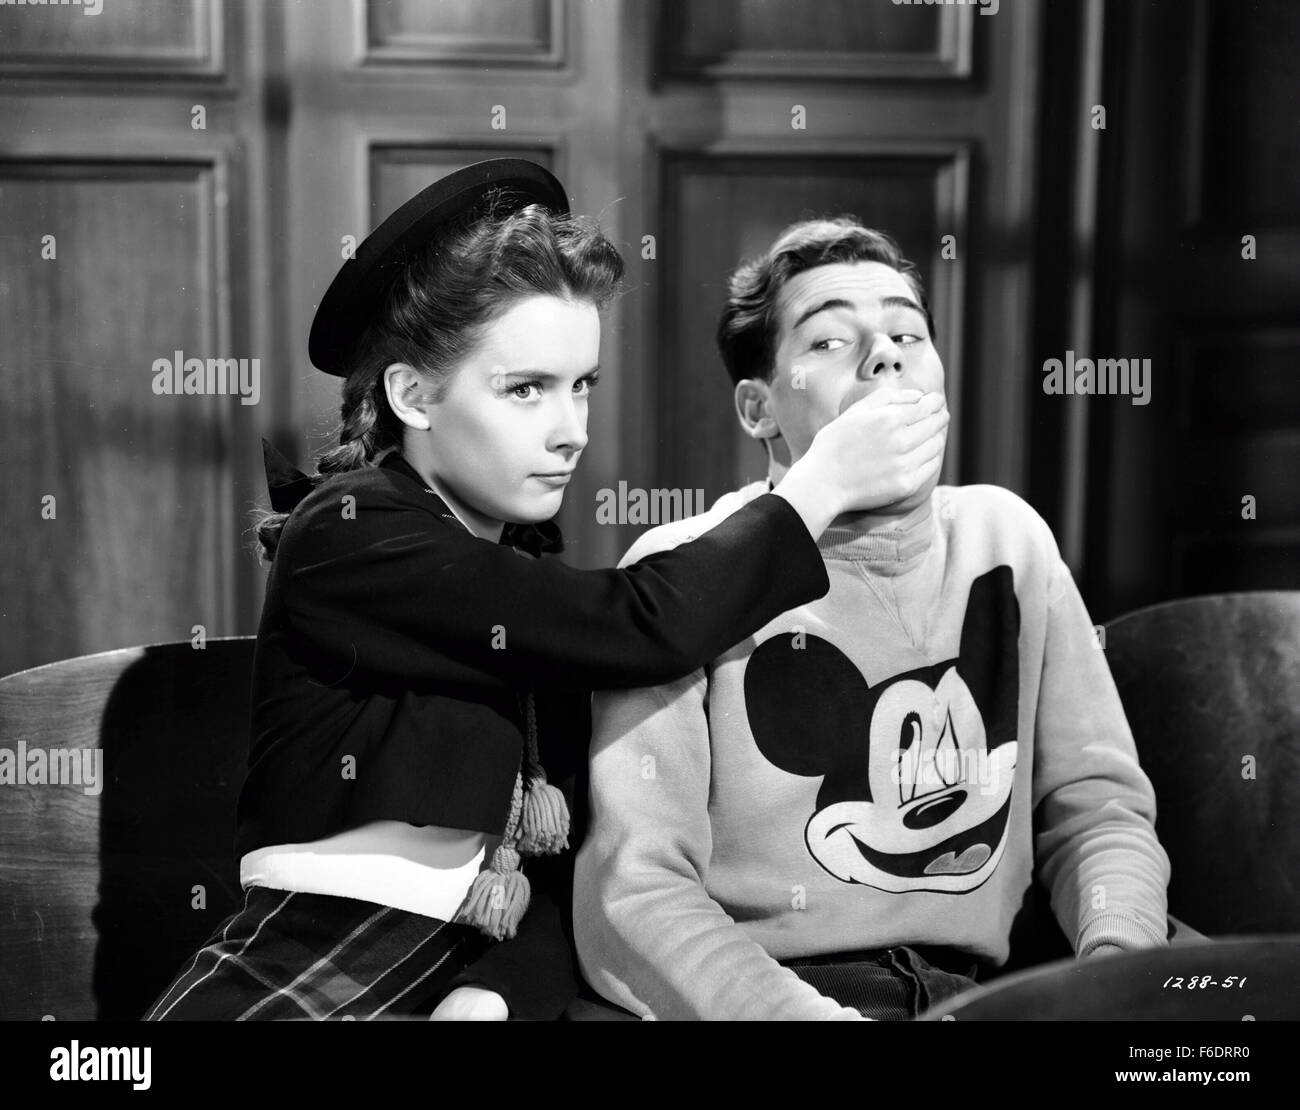 RELEASE DATE: August 2, 1943  MOVIE TITLE: Young Ideas